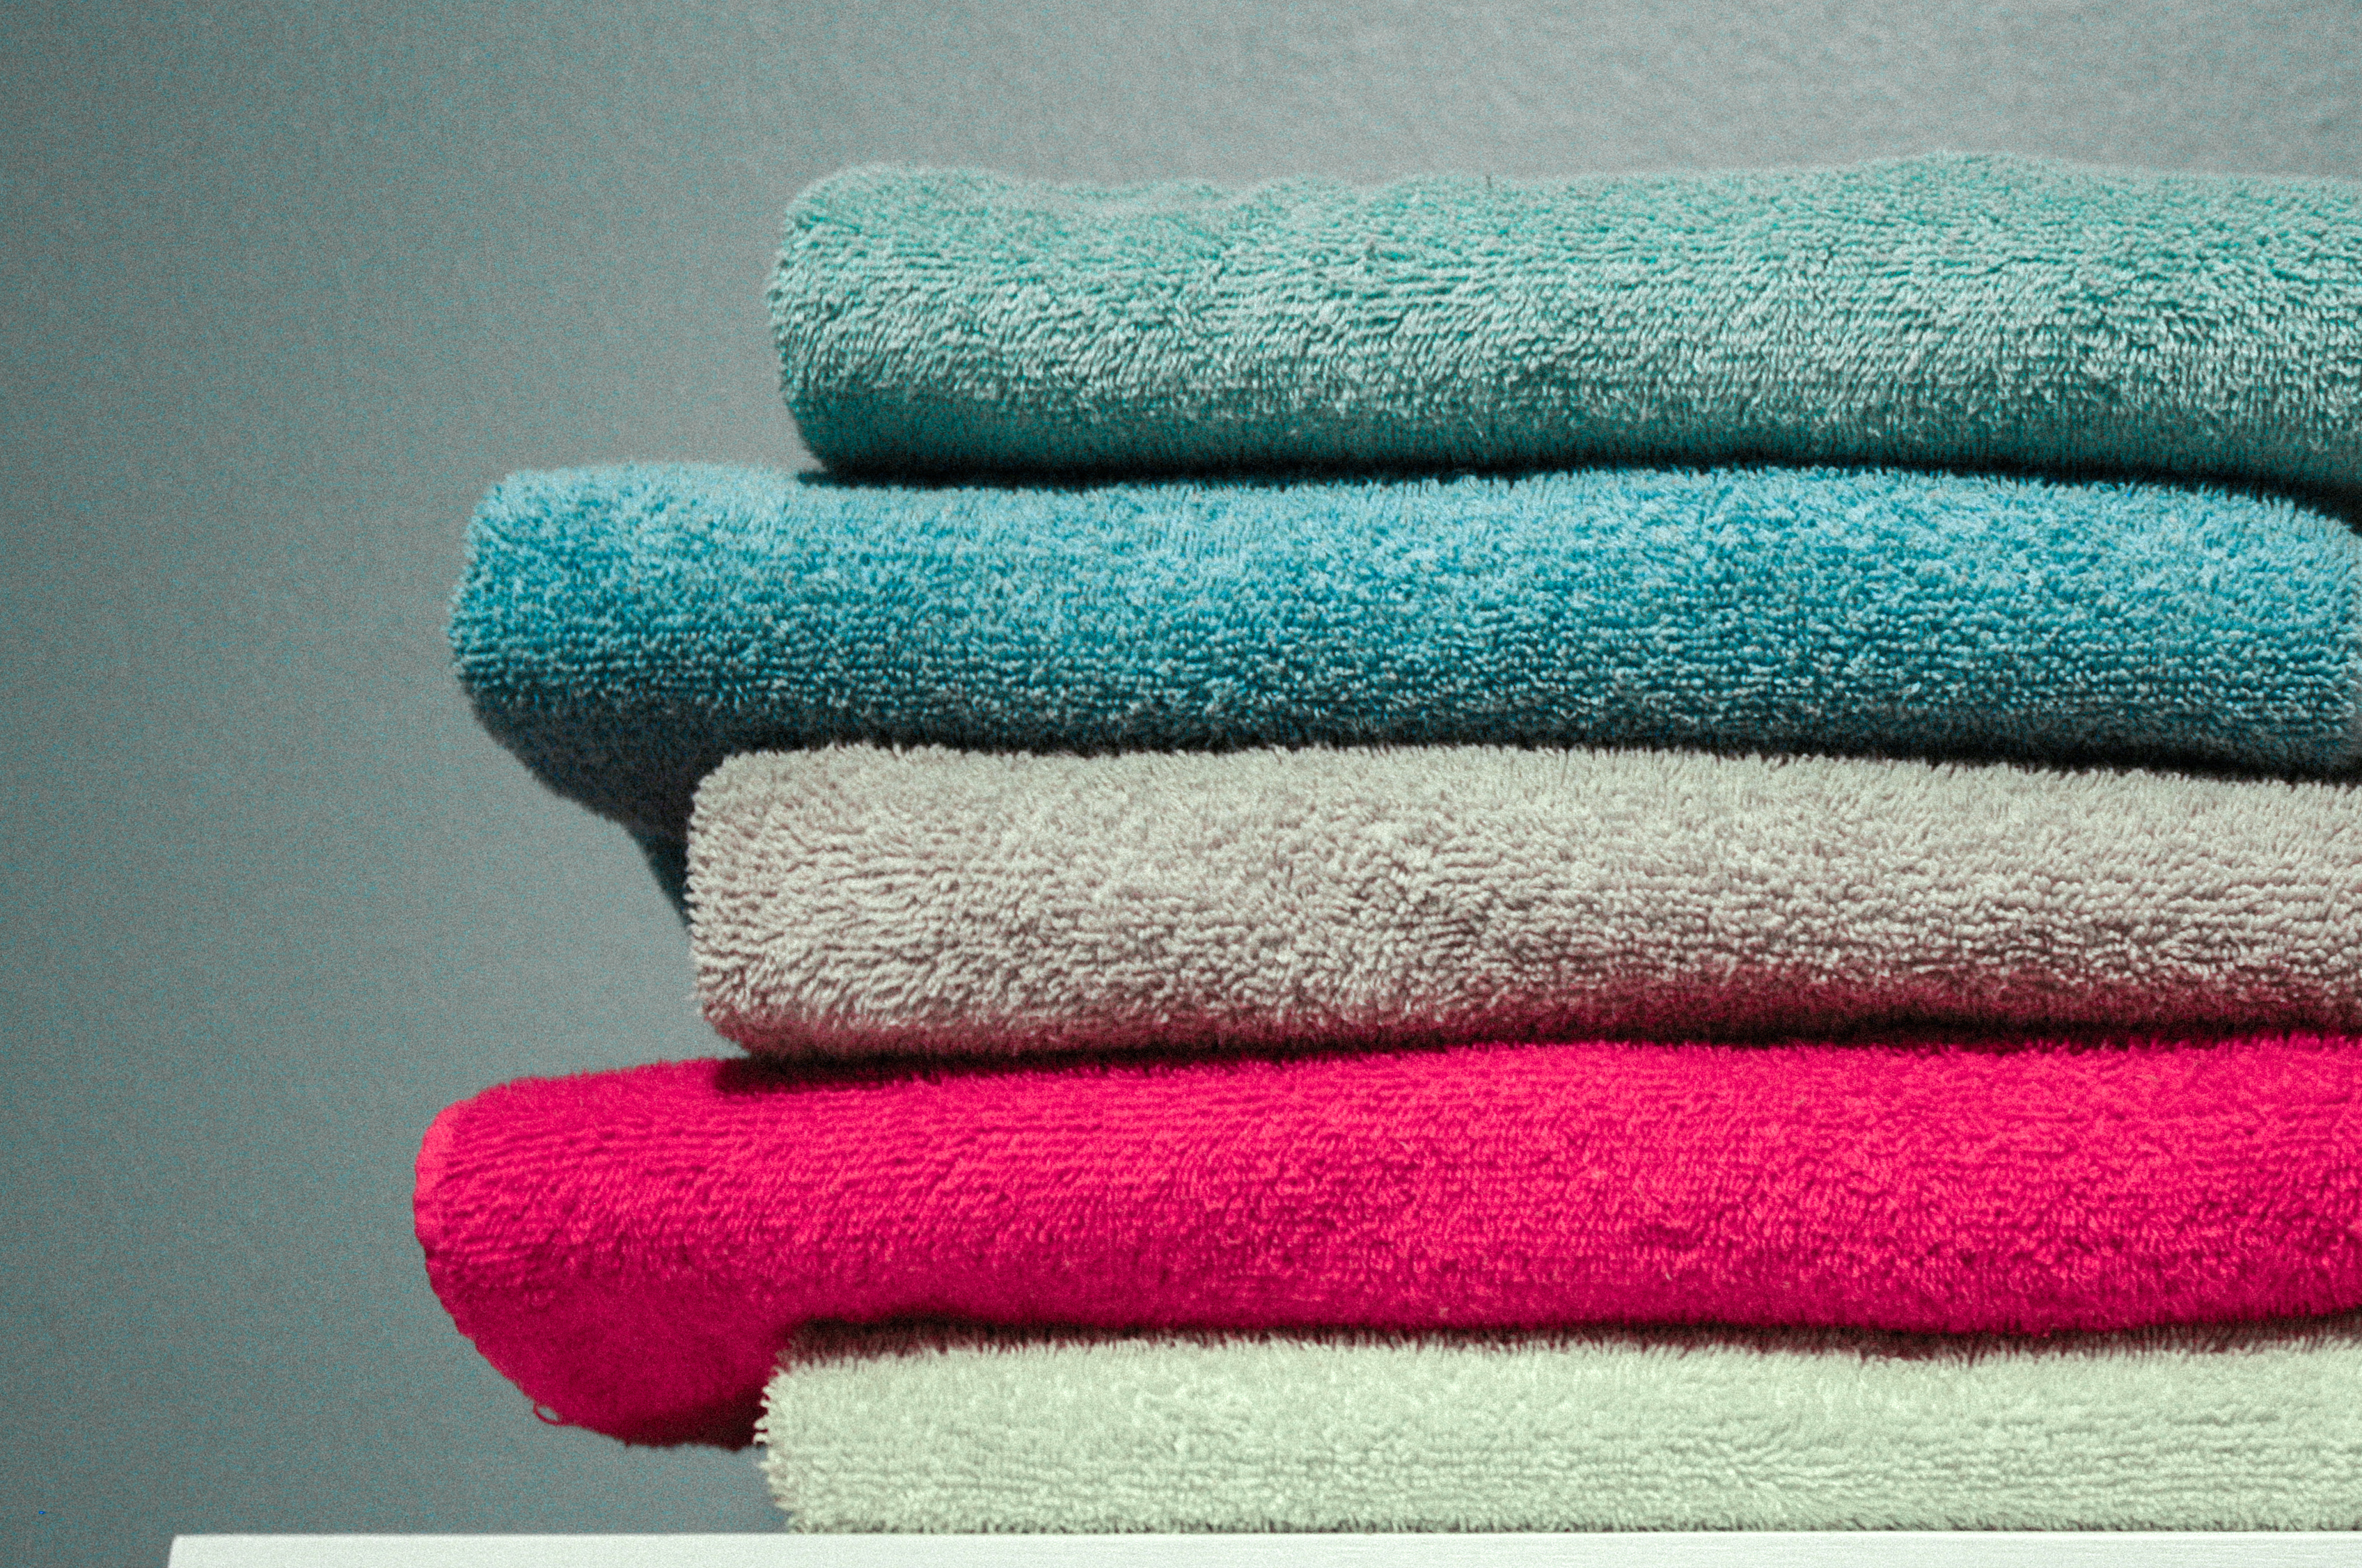 Musty Towels How To Clean Towels With Vinegar Or Baking Soda